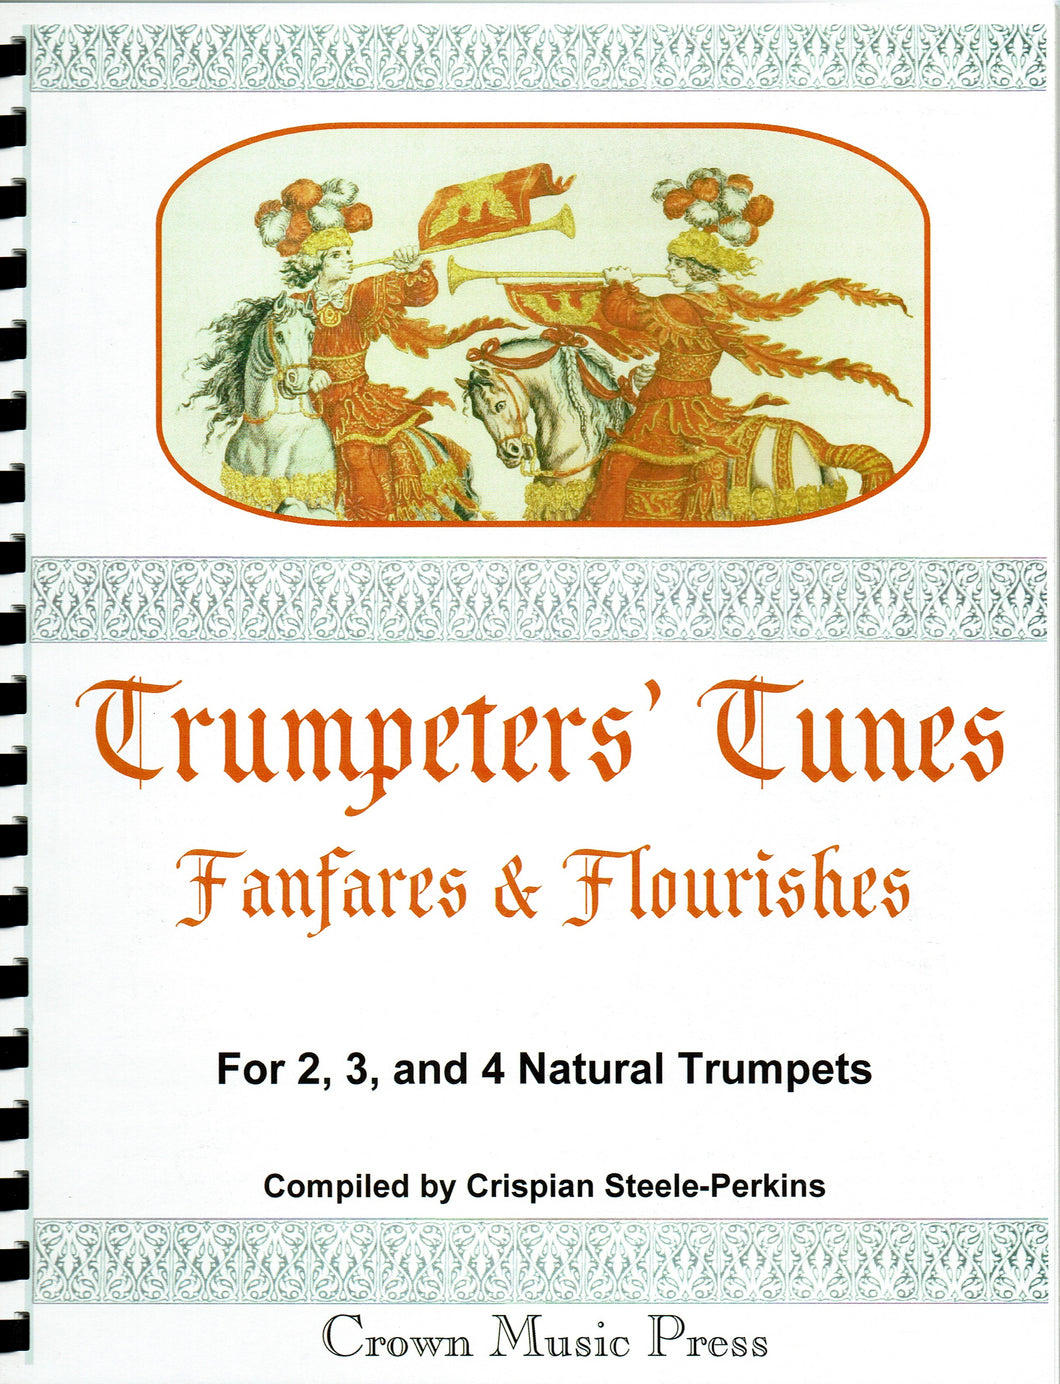 Trumpeter's Tunes, Fanfares, and Flourishes